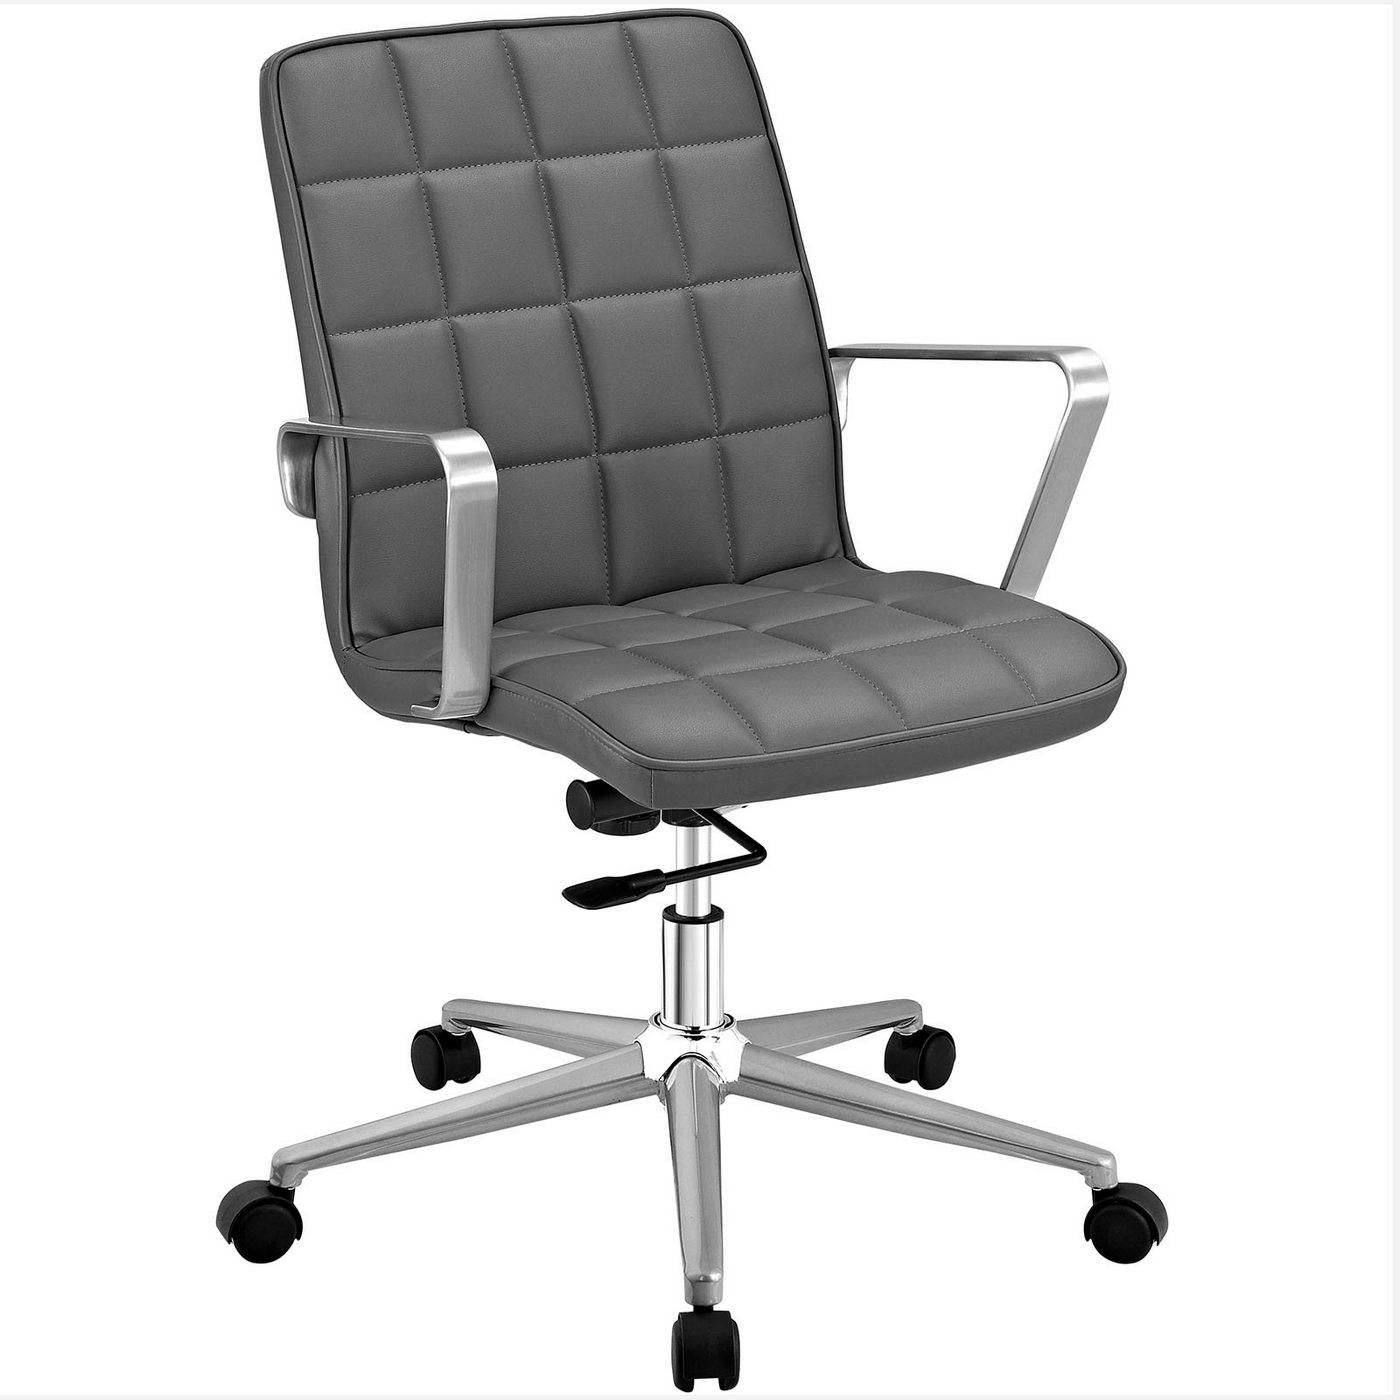 Vinyl upholstered office chair with adjustable tilt and swivel gray